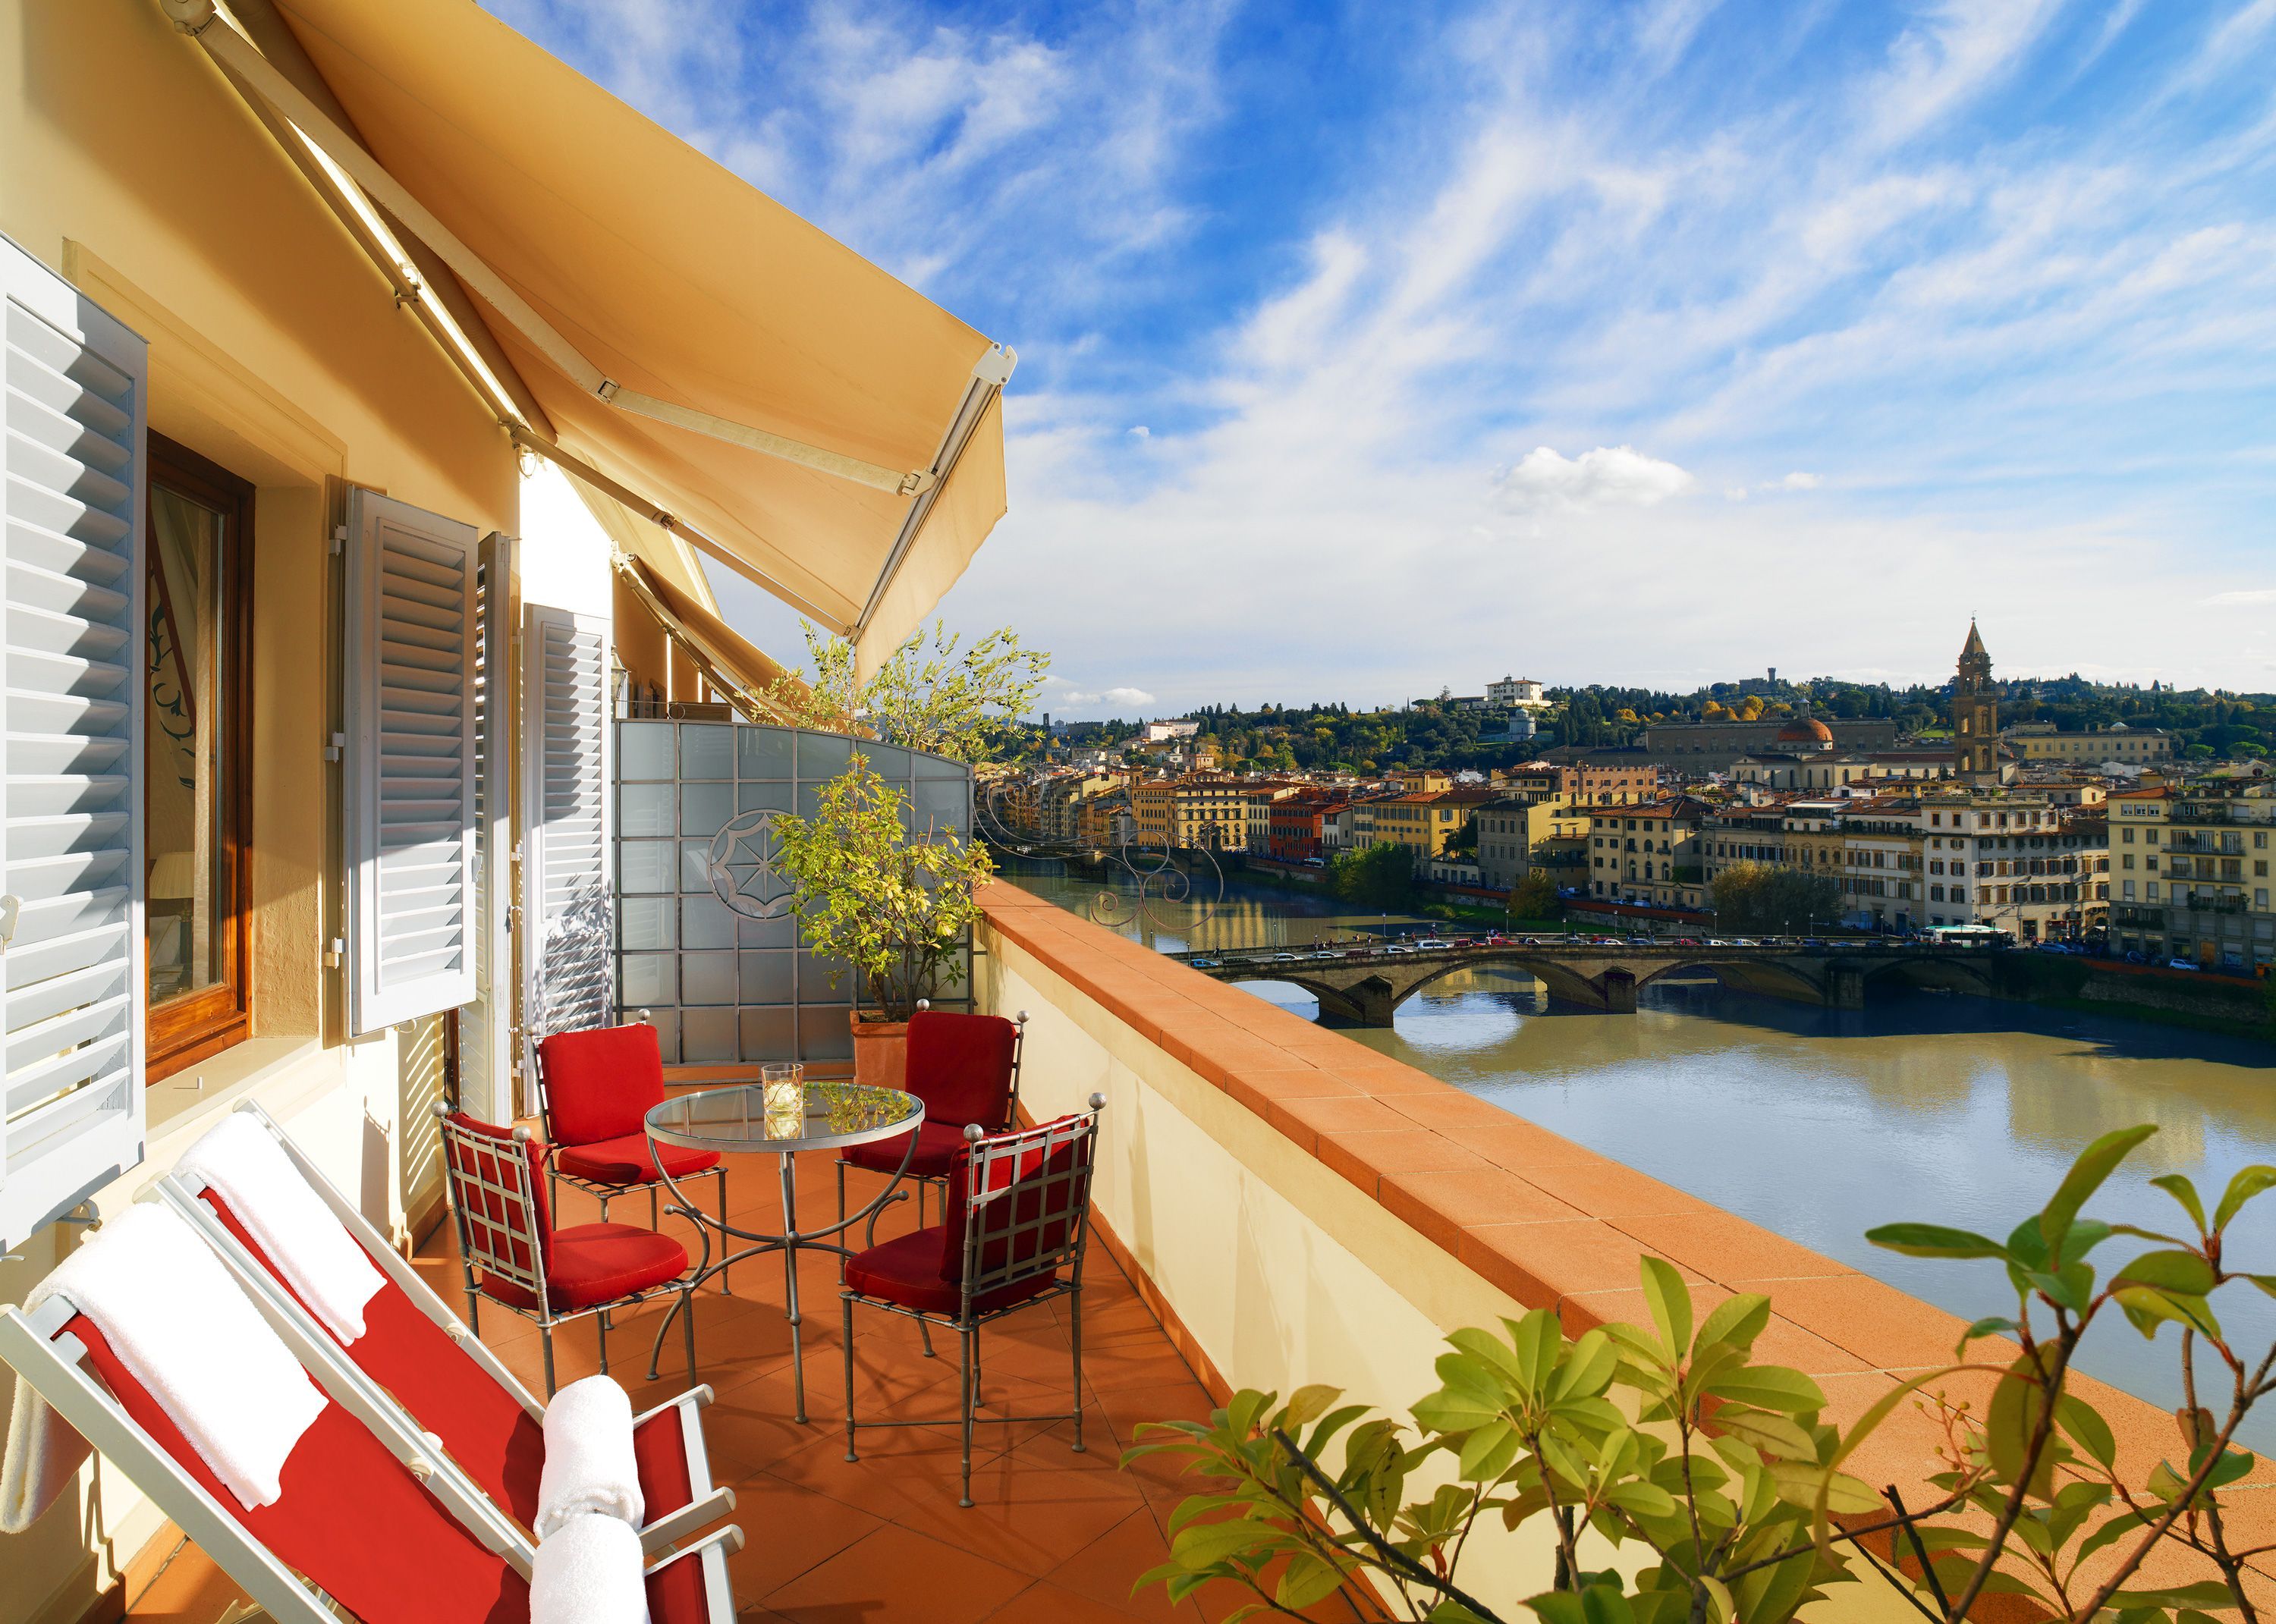 Westin excelsior florence italy westin excelsior florence deals - Views From Penthouse Terrace Westin Excelsior Florence Italy